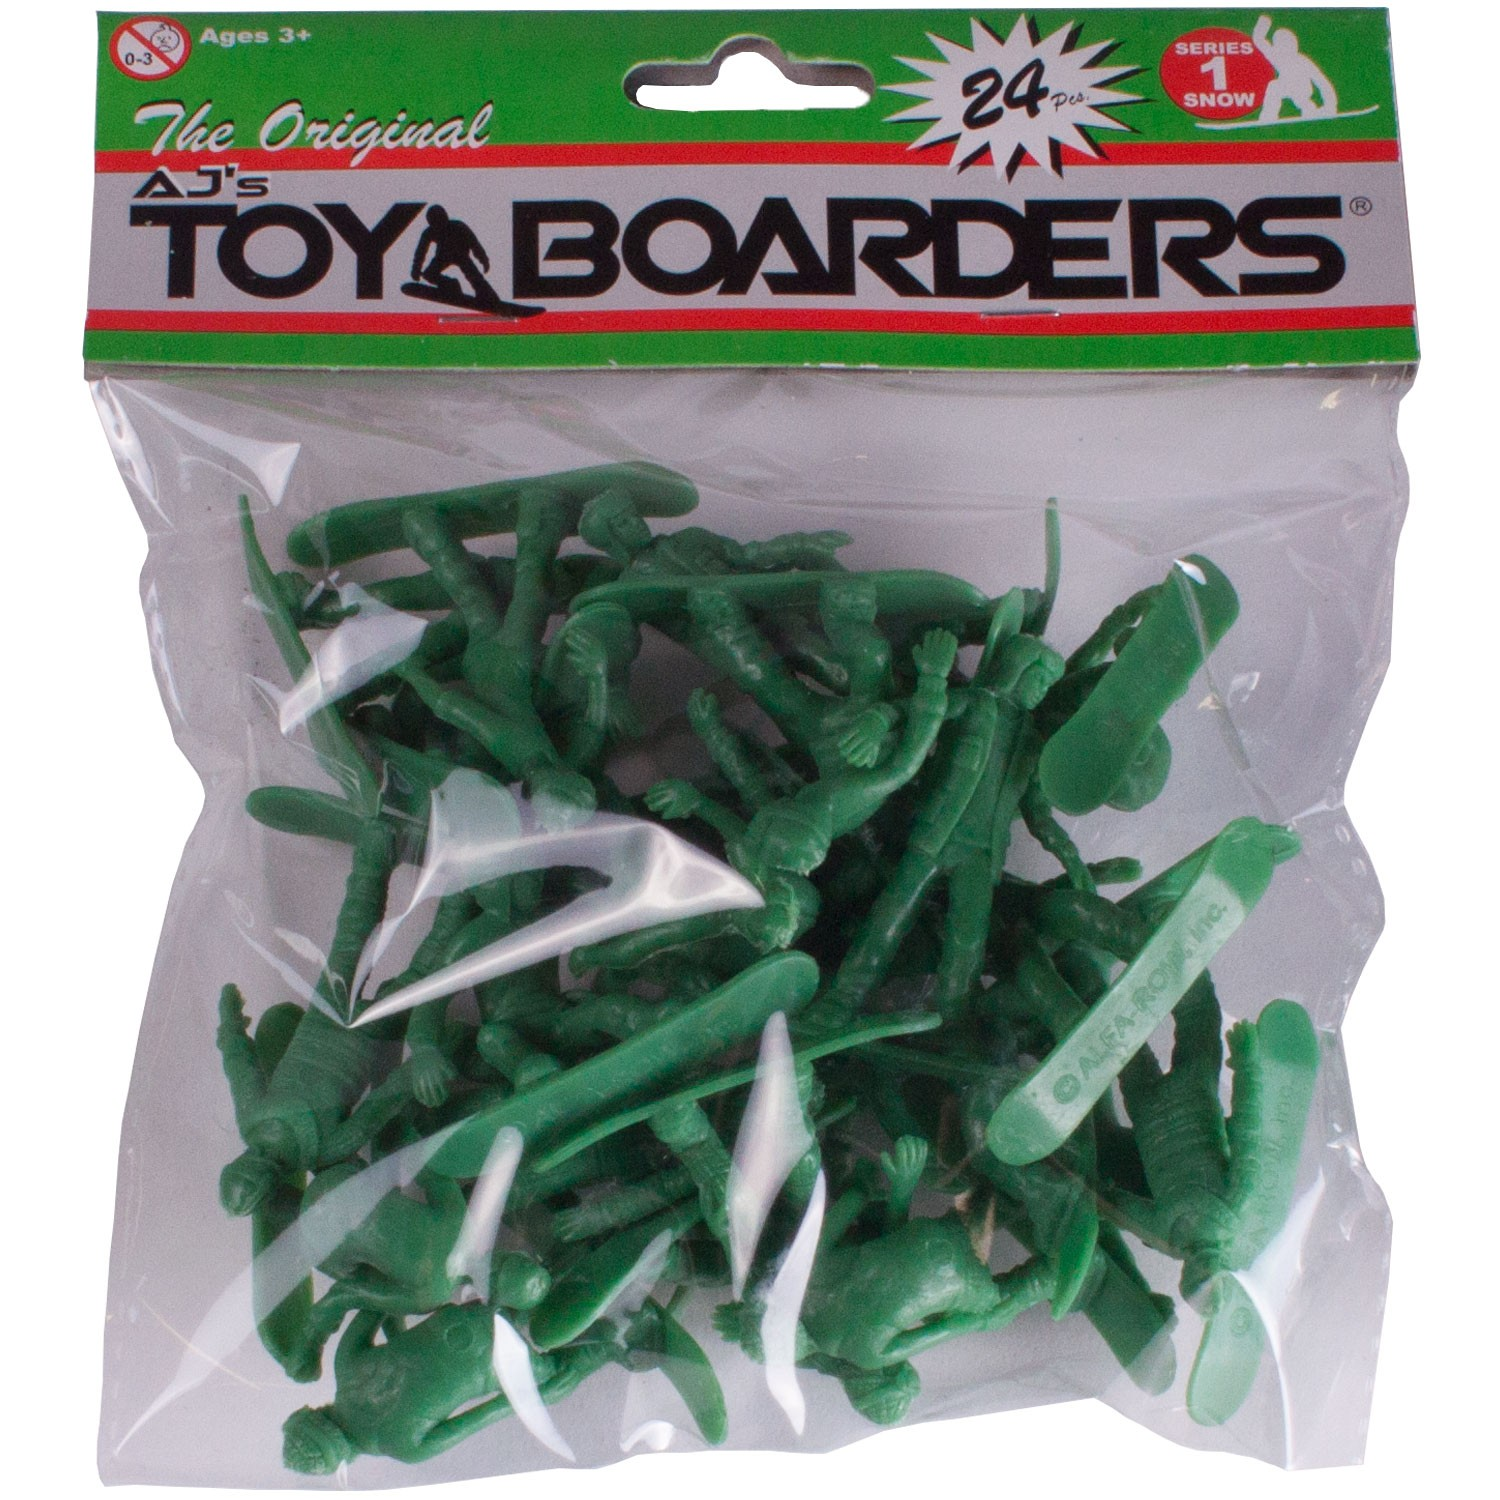 AJ's Toy Boarders 24-Pack - Snow - Series 1